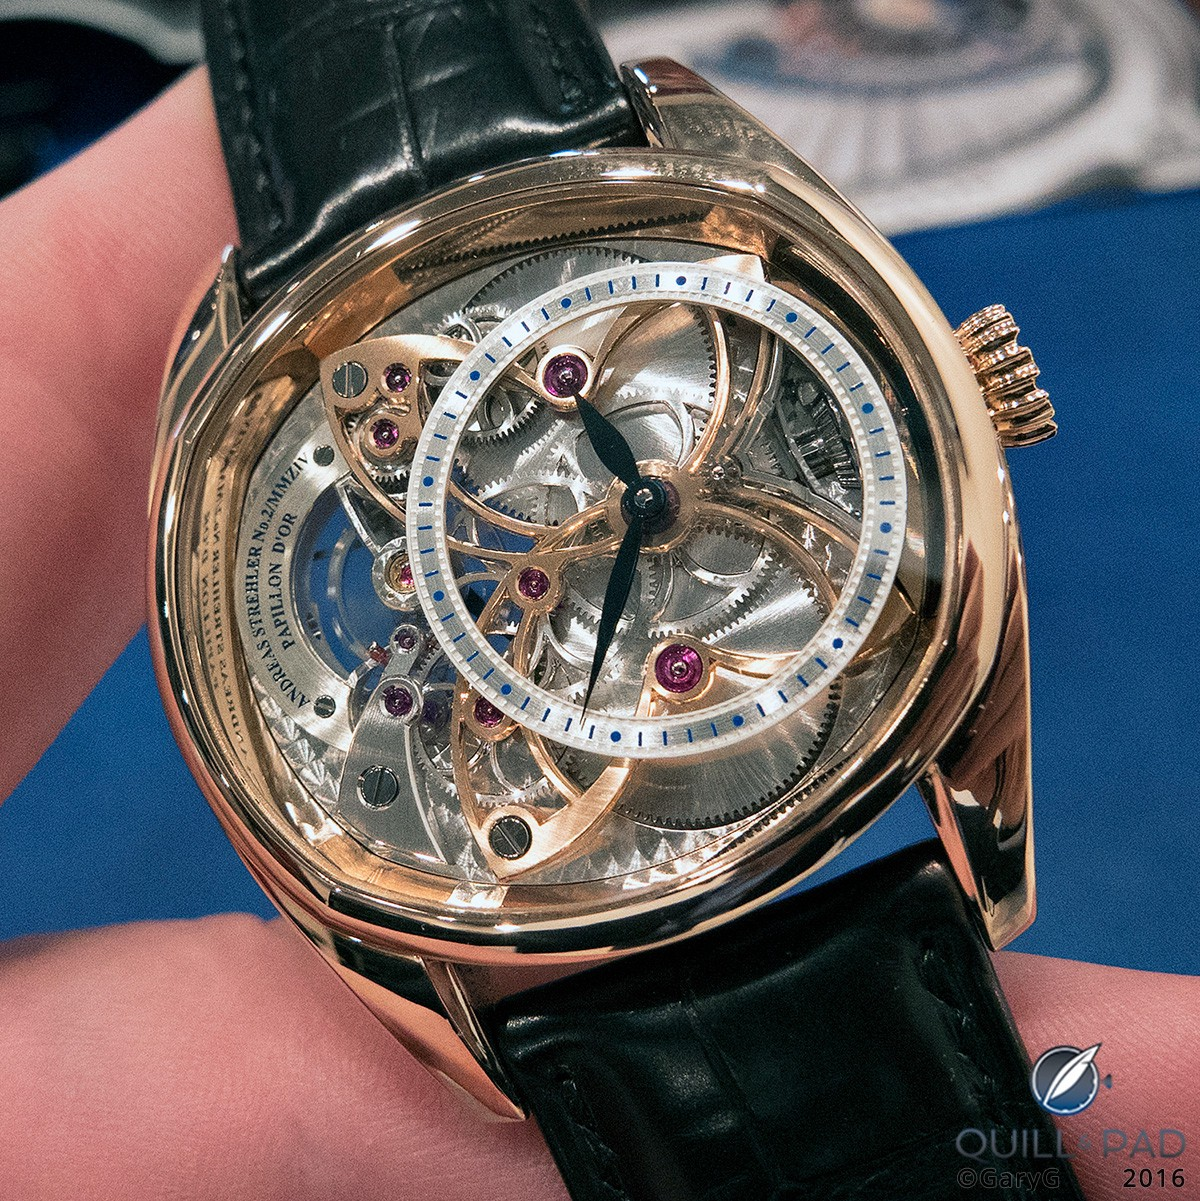 Papillon d'Or by Andreas Strehler